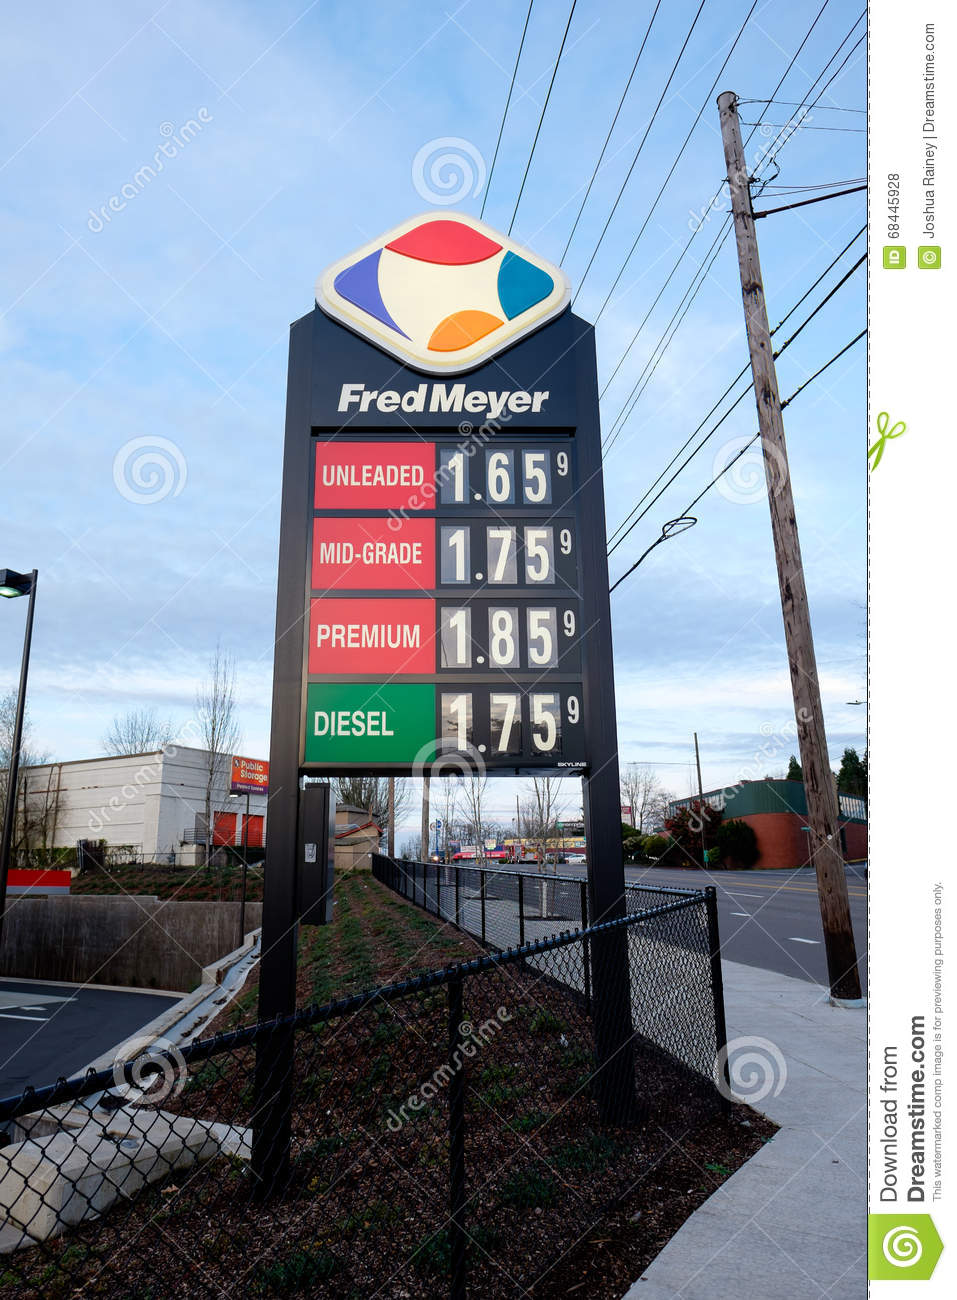 Low Gas Prices At Fred Meyer Fuel Station In Portland. Indiana Overweight Permits Tucows Domains Inc. Used Auto Extended Warranty Braces In Mouth. Project Management System Software. Cobra Insurance Company Health Partners Vision. Time Warner Cable Wadsworth Ohio. Atlantic City Community College. Cruise Plastic Surgery Museum Studies Degrees. Right Turn Driving School Activemq Broker Url